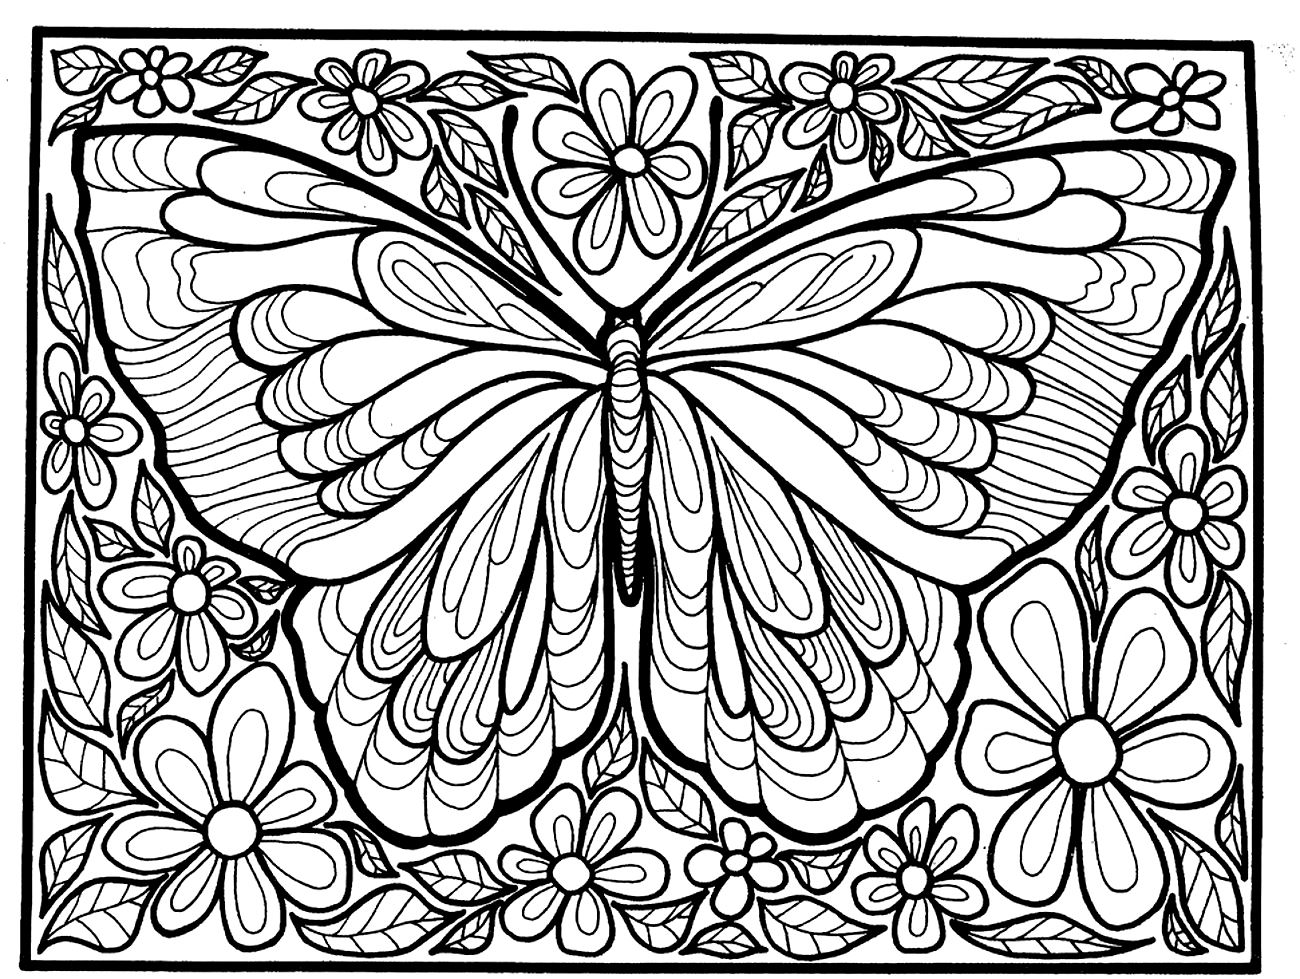 a coloring page of a butterfly - big butterfly butterflies insects adult coloring pages